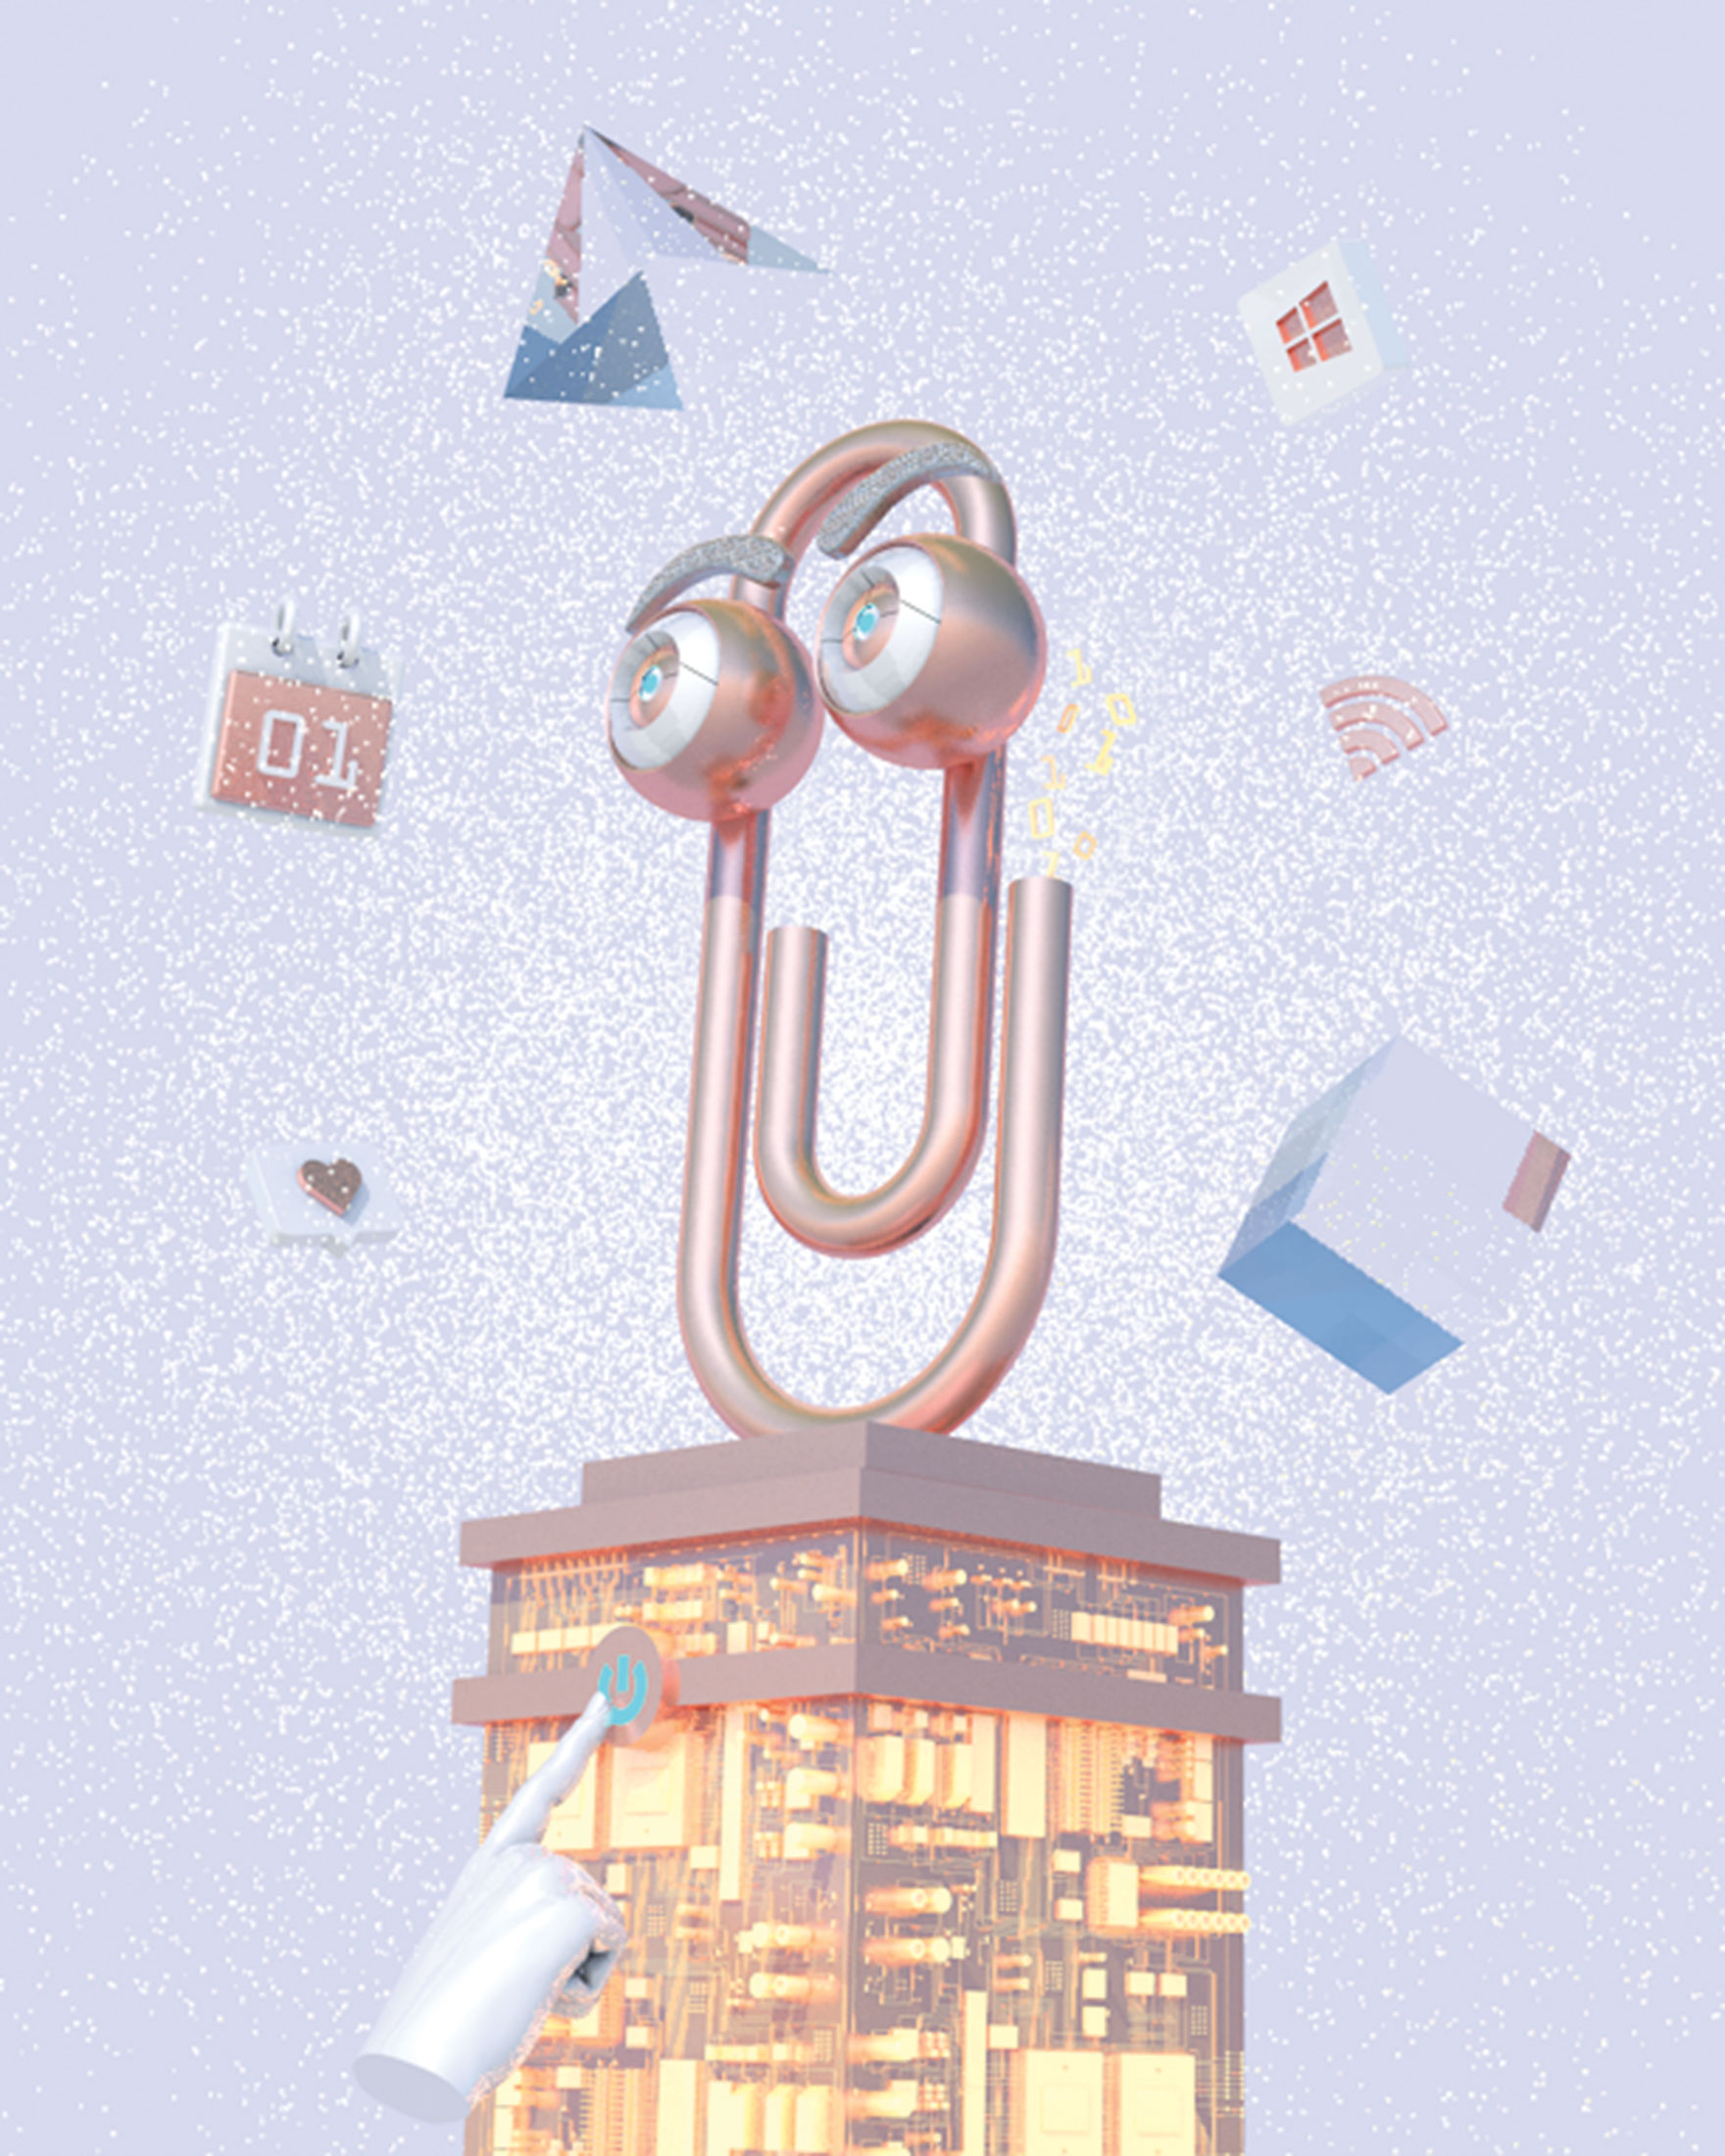 Clippy's Back: The Future of Microsoft Is Chatbots